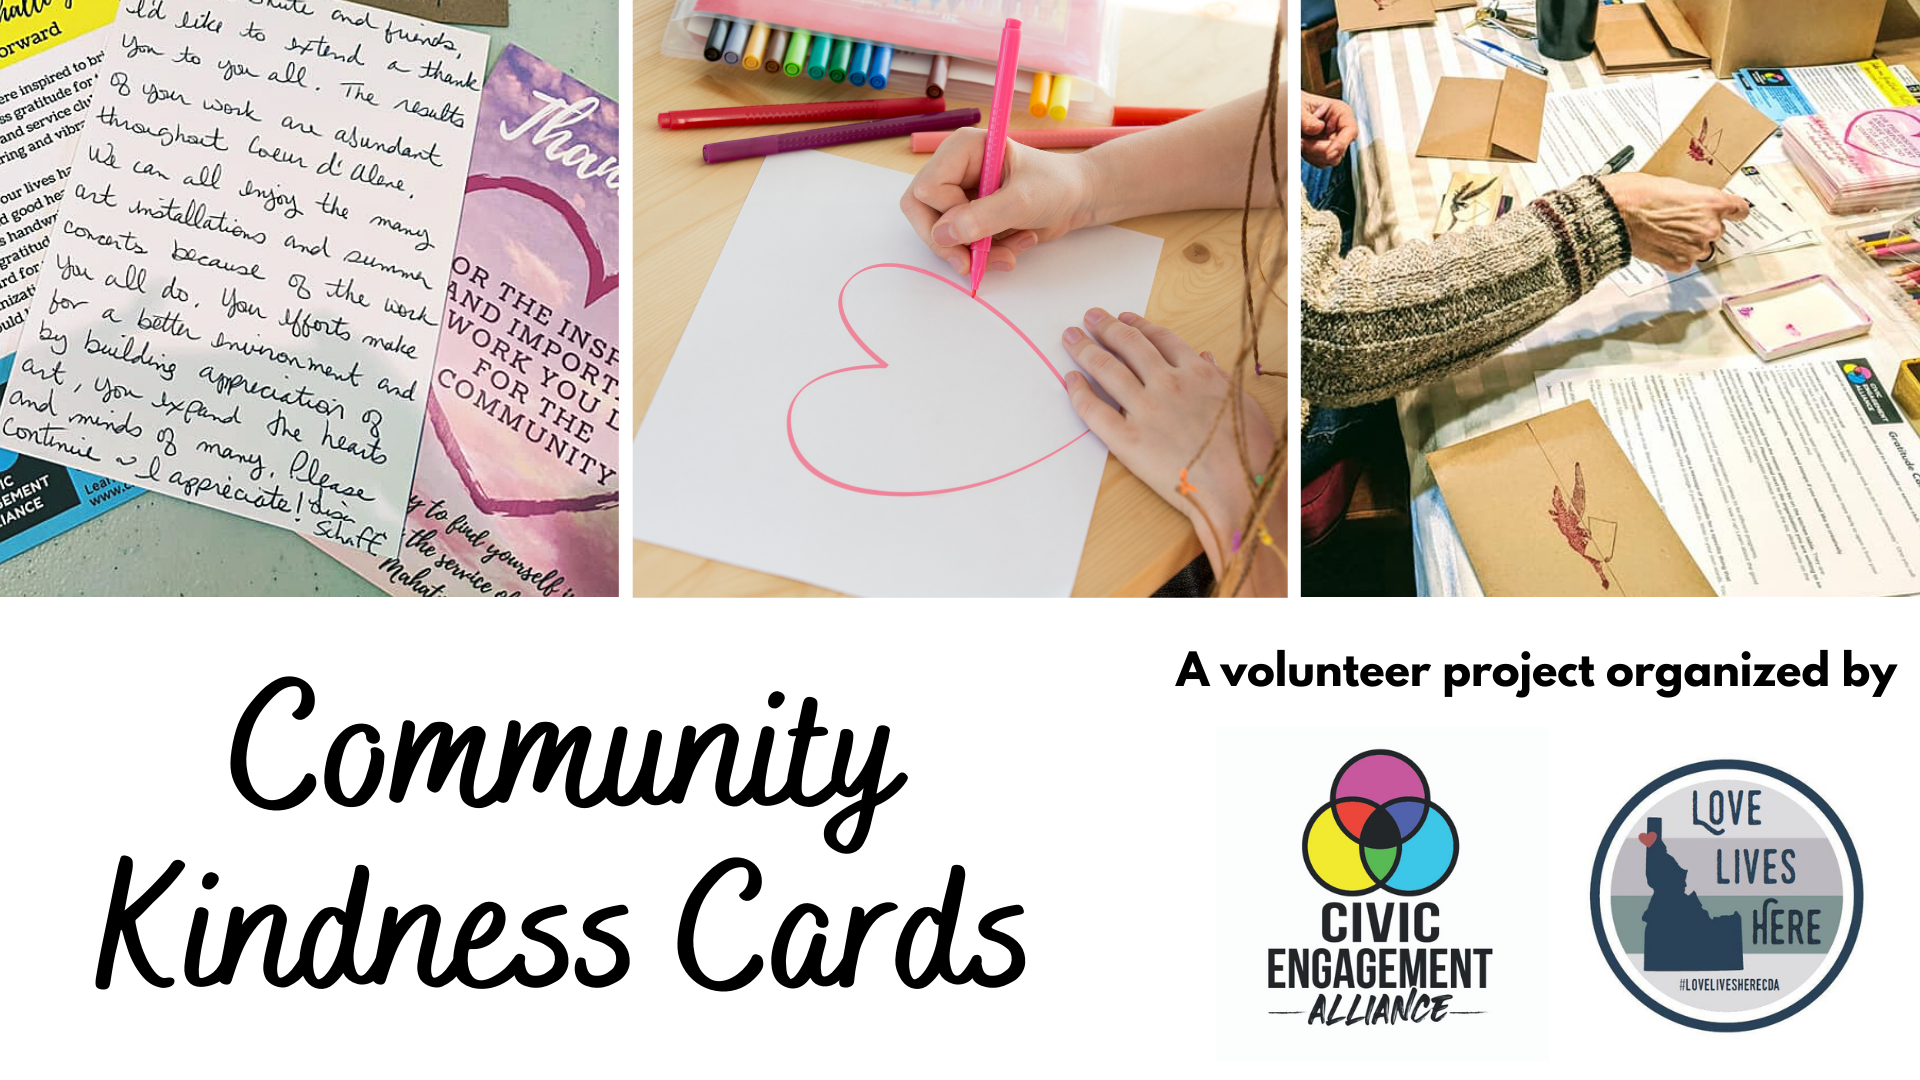 Kindness Cards Love Lives Here and Civid Engagement Alliance